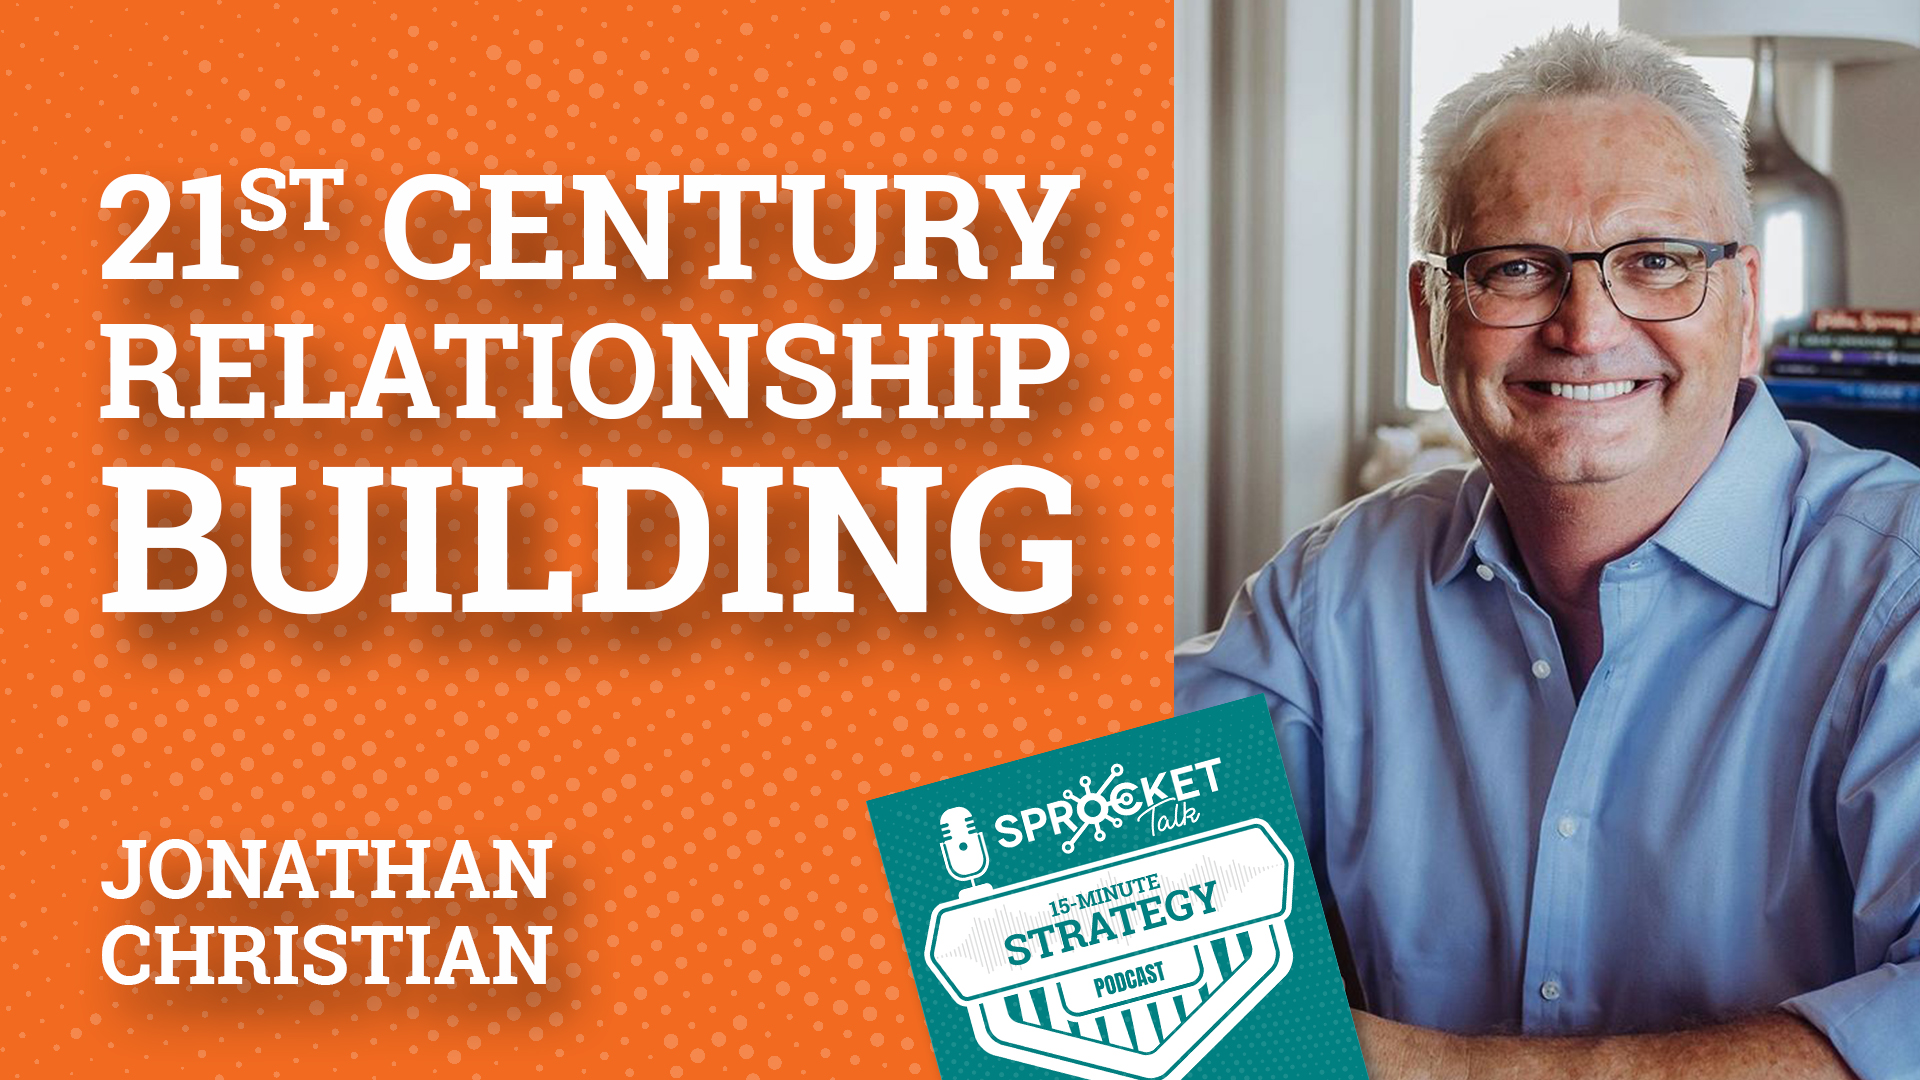 Jonathan Christian on a 21st Century Networking Strategy | 15-Minute Strategy Podcast